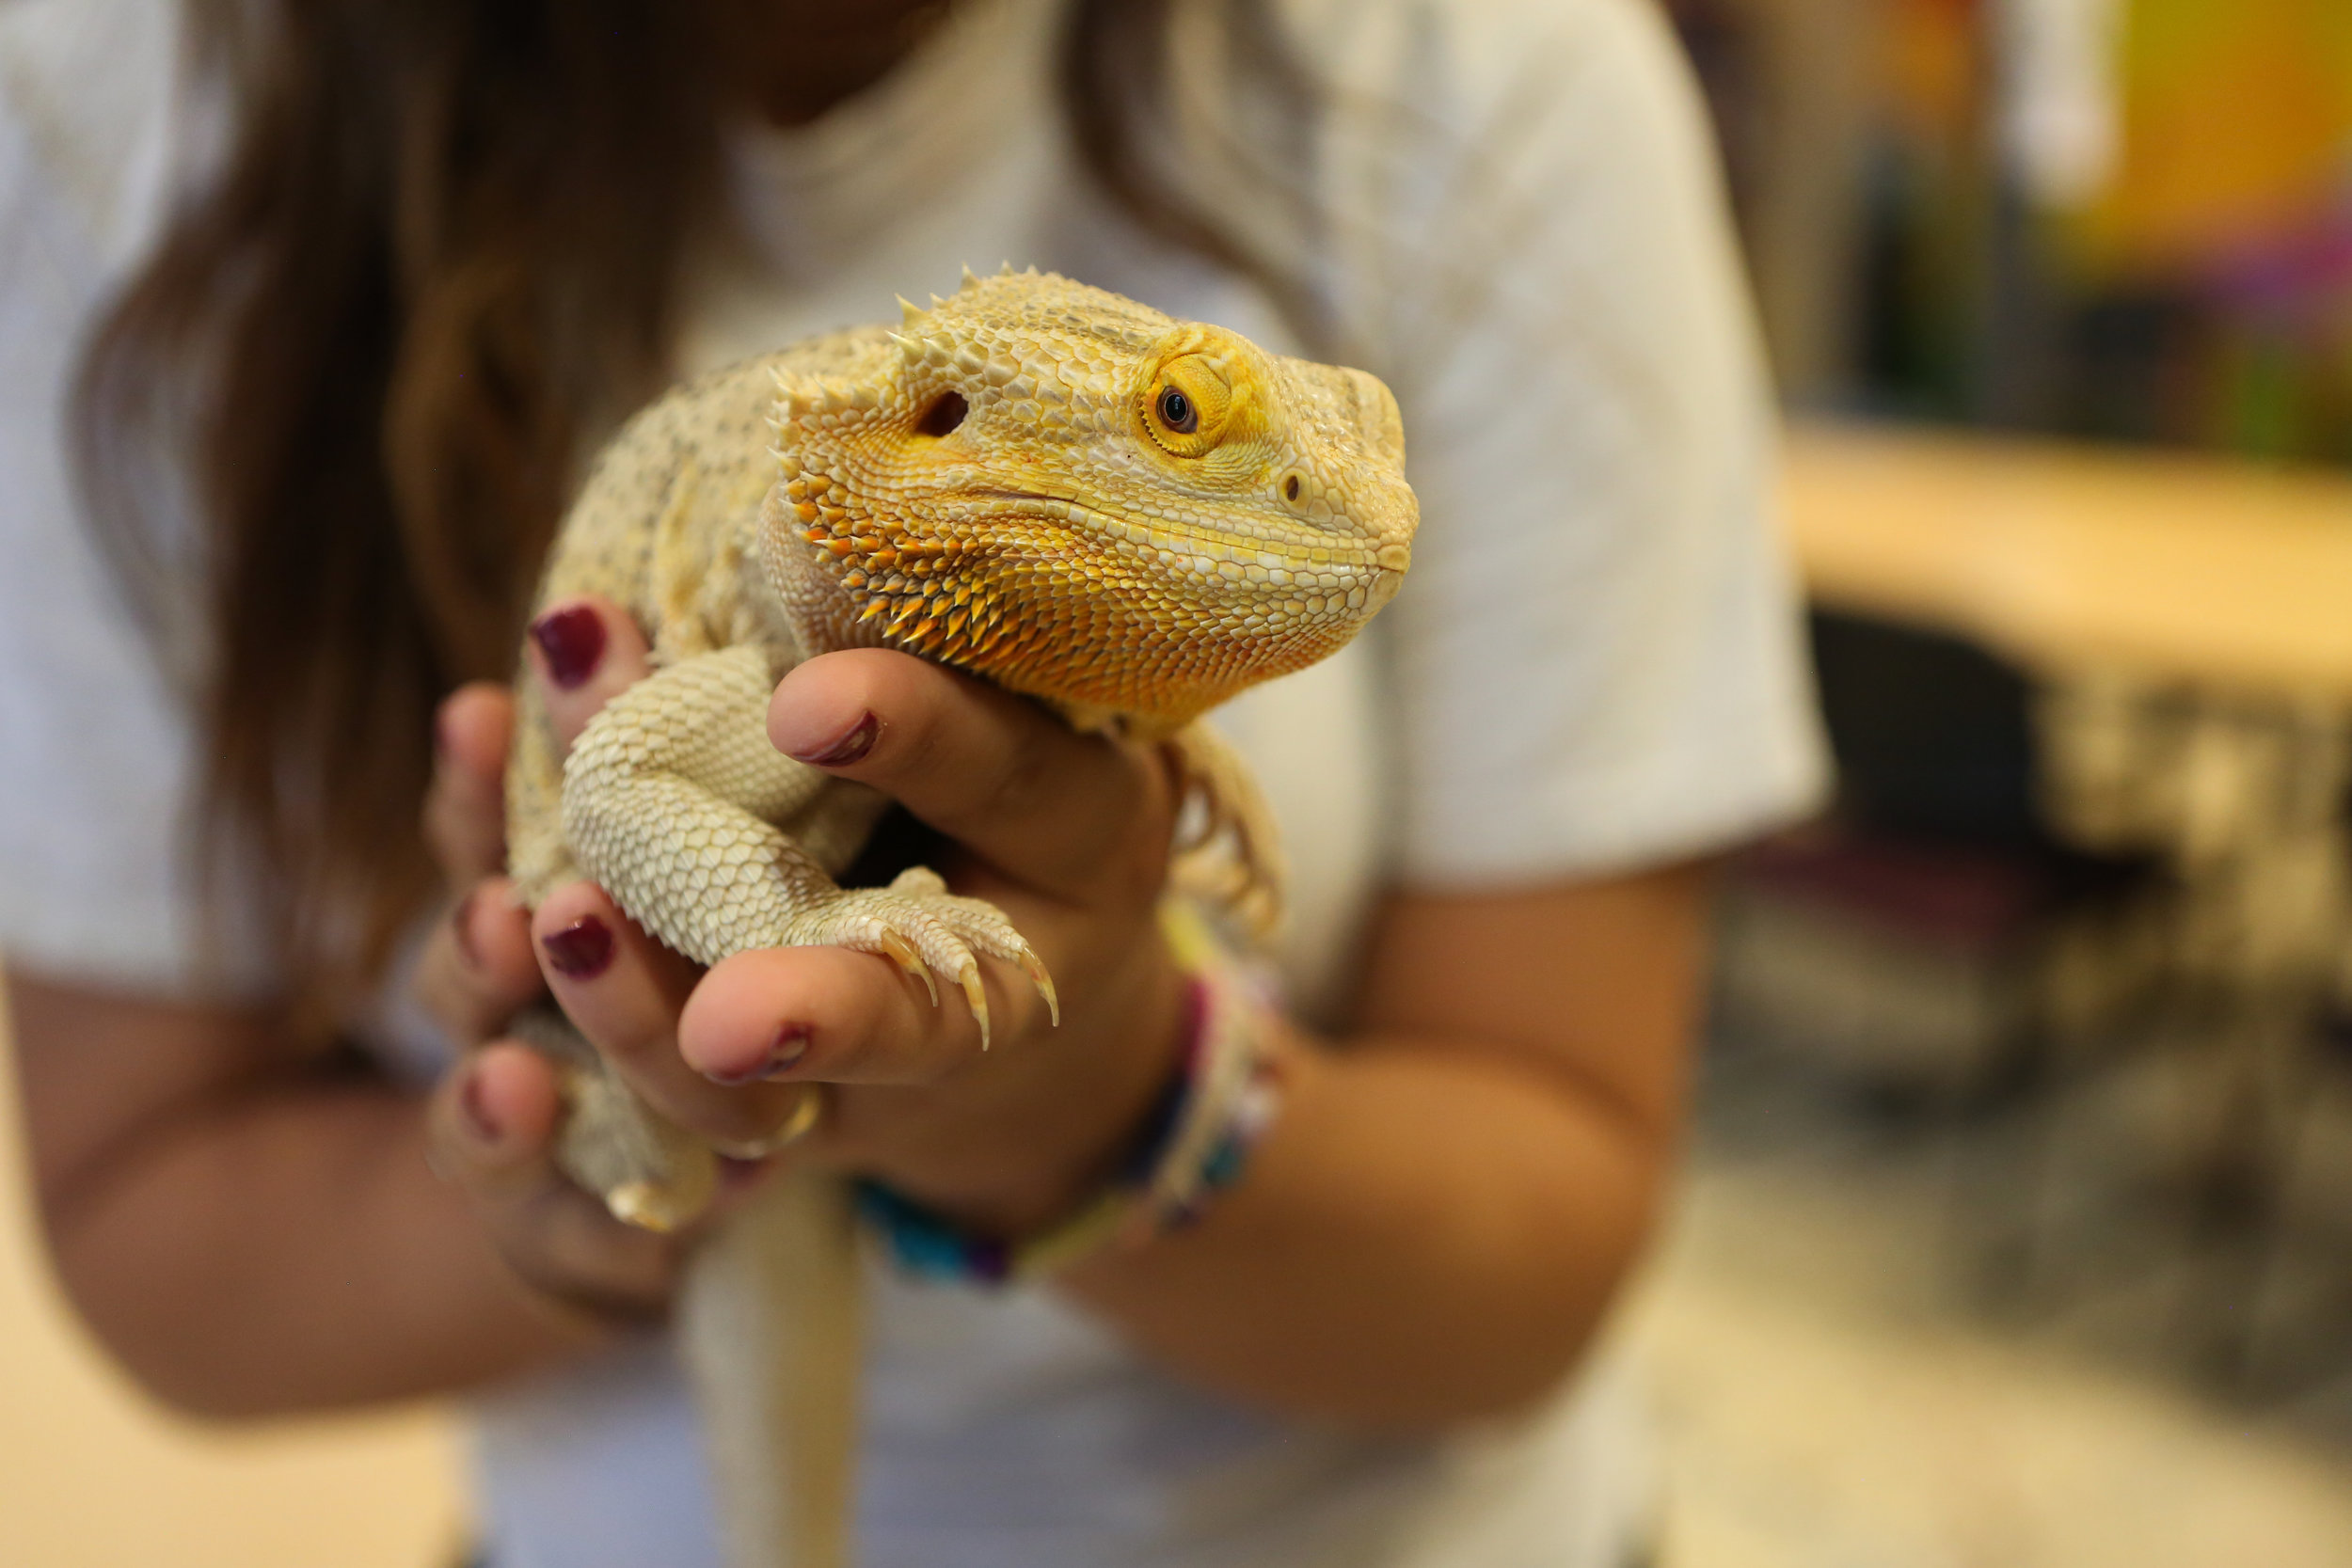 Tiberius, Pathway Girls' resident bearded dragon Iguana, is a well liked roommate who provides a calming presence for the girls.